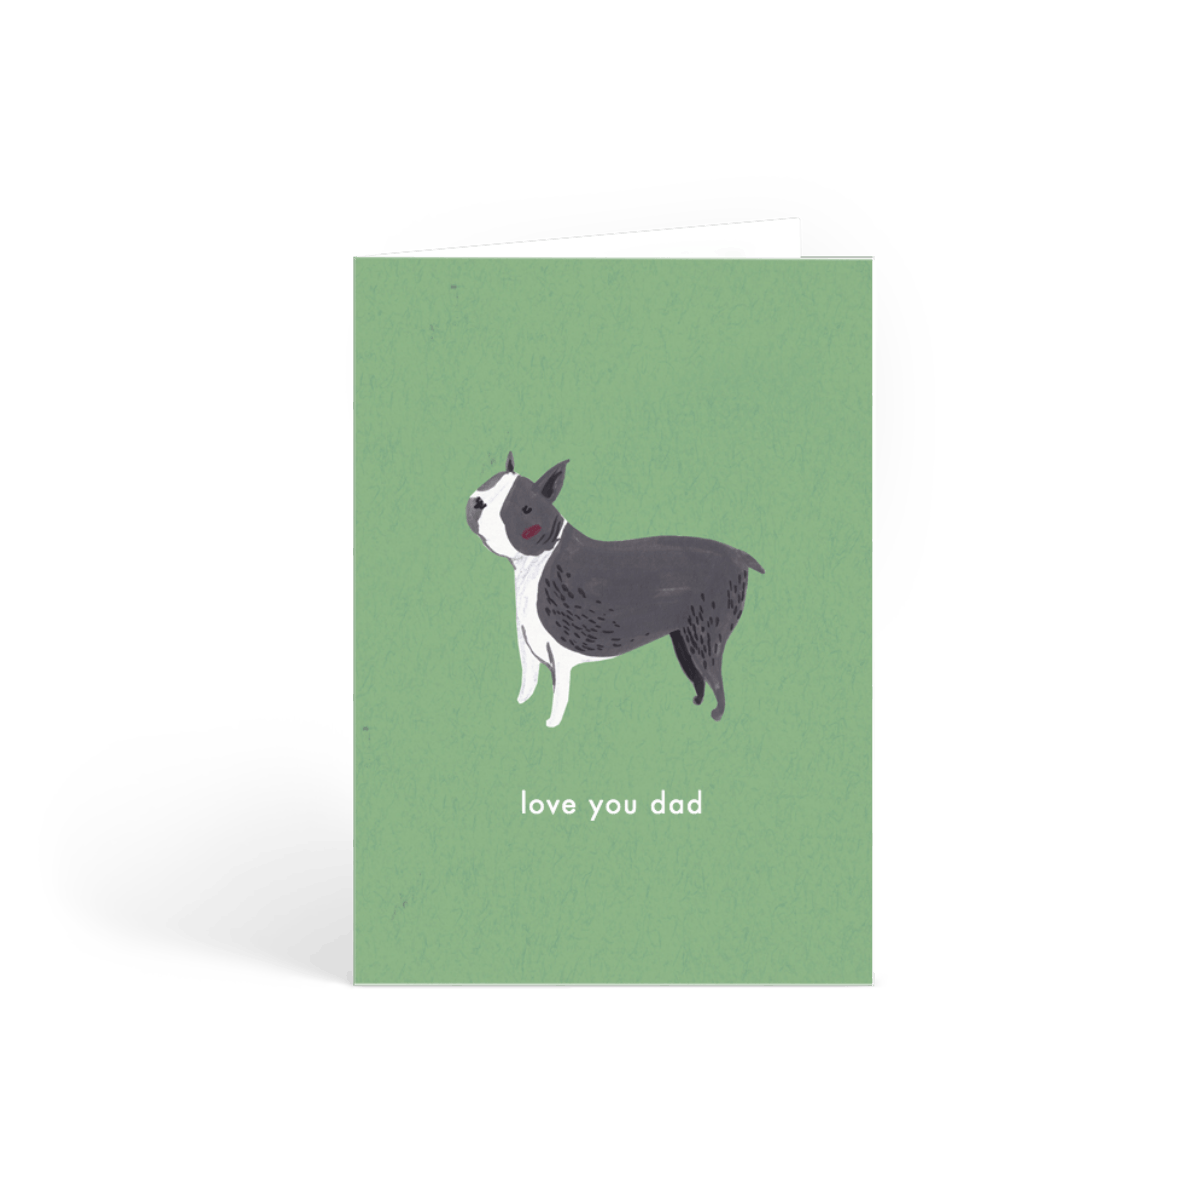 Https%3a%2f%2fwww.papier.com%2fproduct image%2f7245%2f2%2fboston terrier 1783 front 1581434278.png?ixlib=rb 1.1